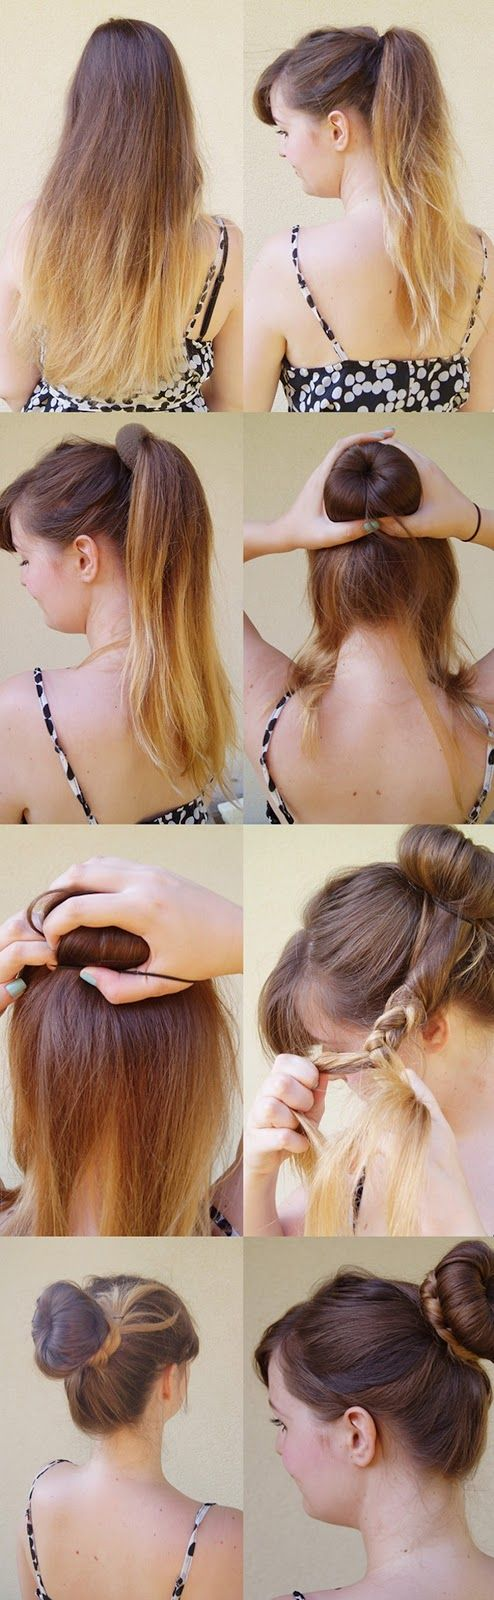 Nothin' Fancy. Really.: Easy hairstyle tutorial: The Braided Donut Bun. <3 http://nothinfancyreally.blogspot.com/2013/07/easy-hairstyle-tutorial-braided-donut.html